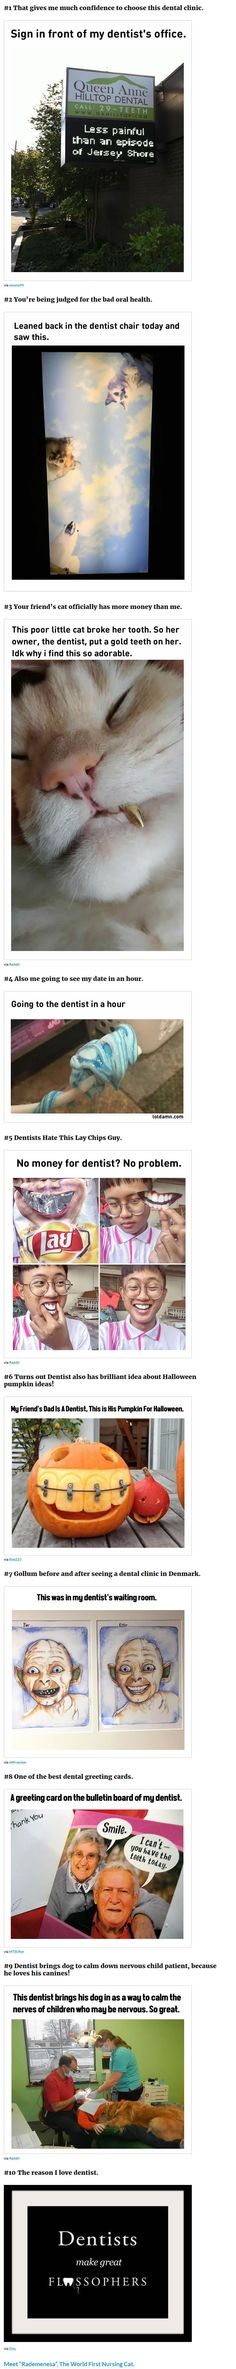 10 dentist memes 9 how to choose the right dentist